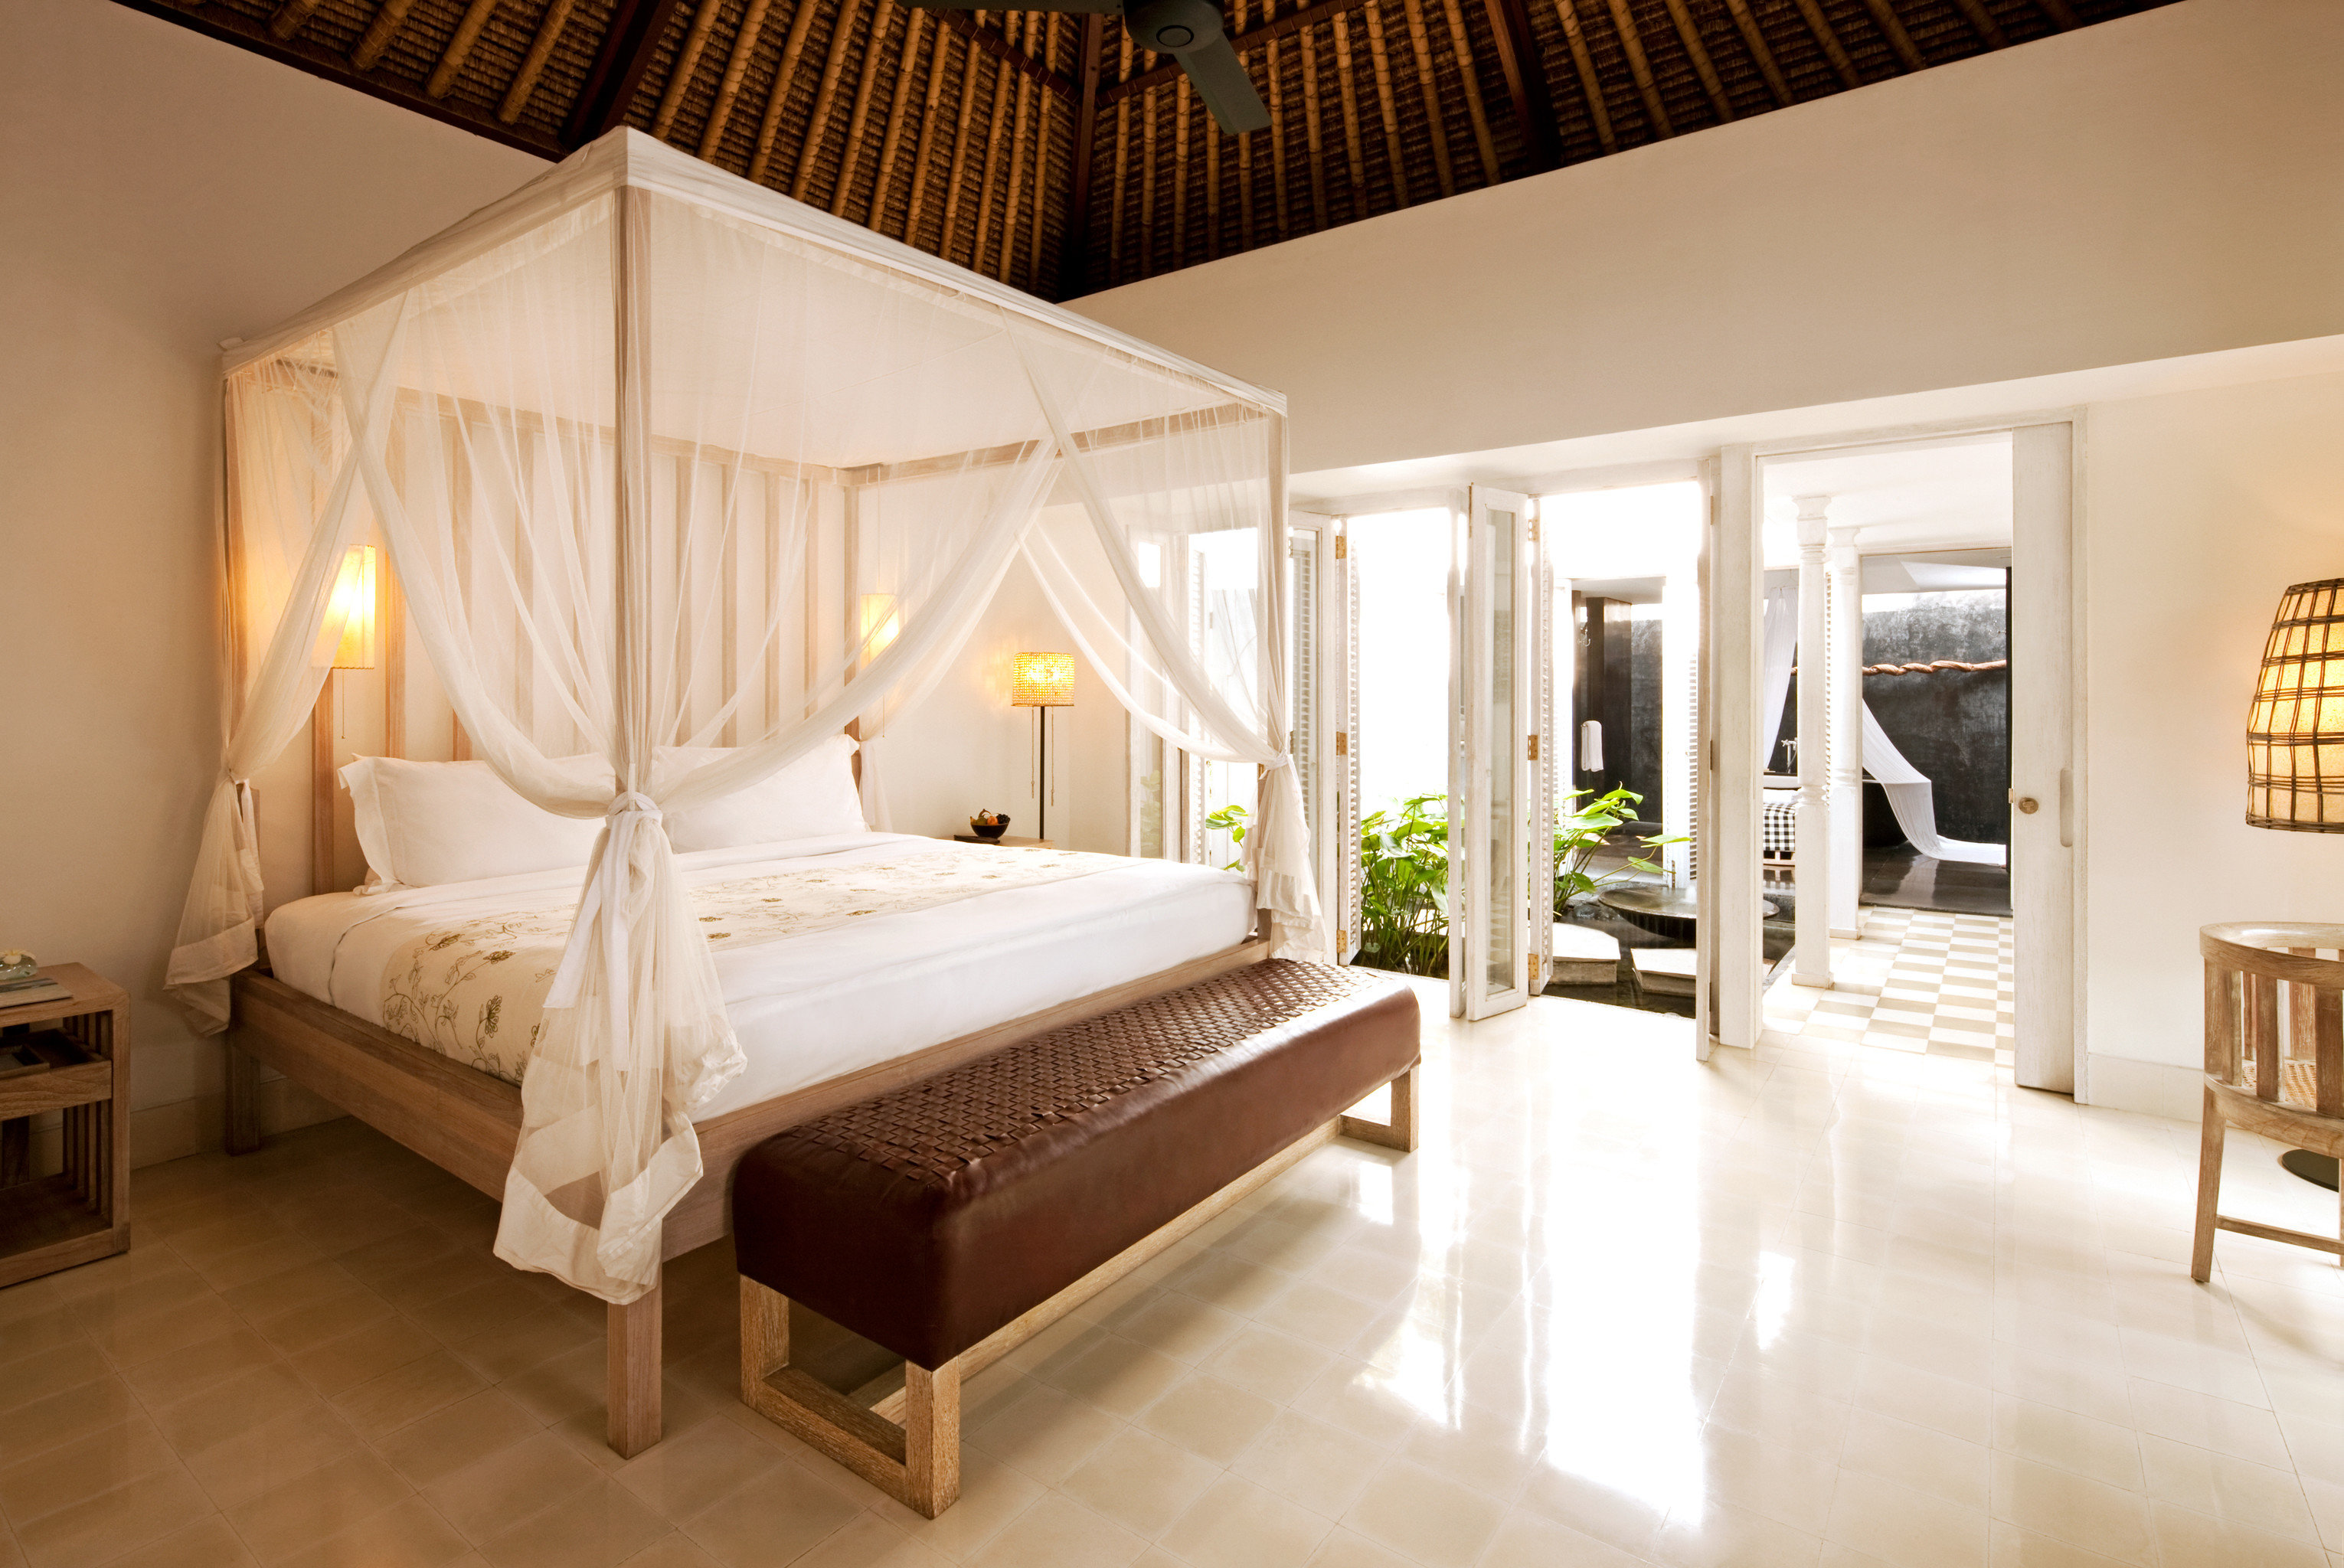 Bedroom Honeymoon Luxury Romance Romantic property Suite Villa cottage mansion